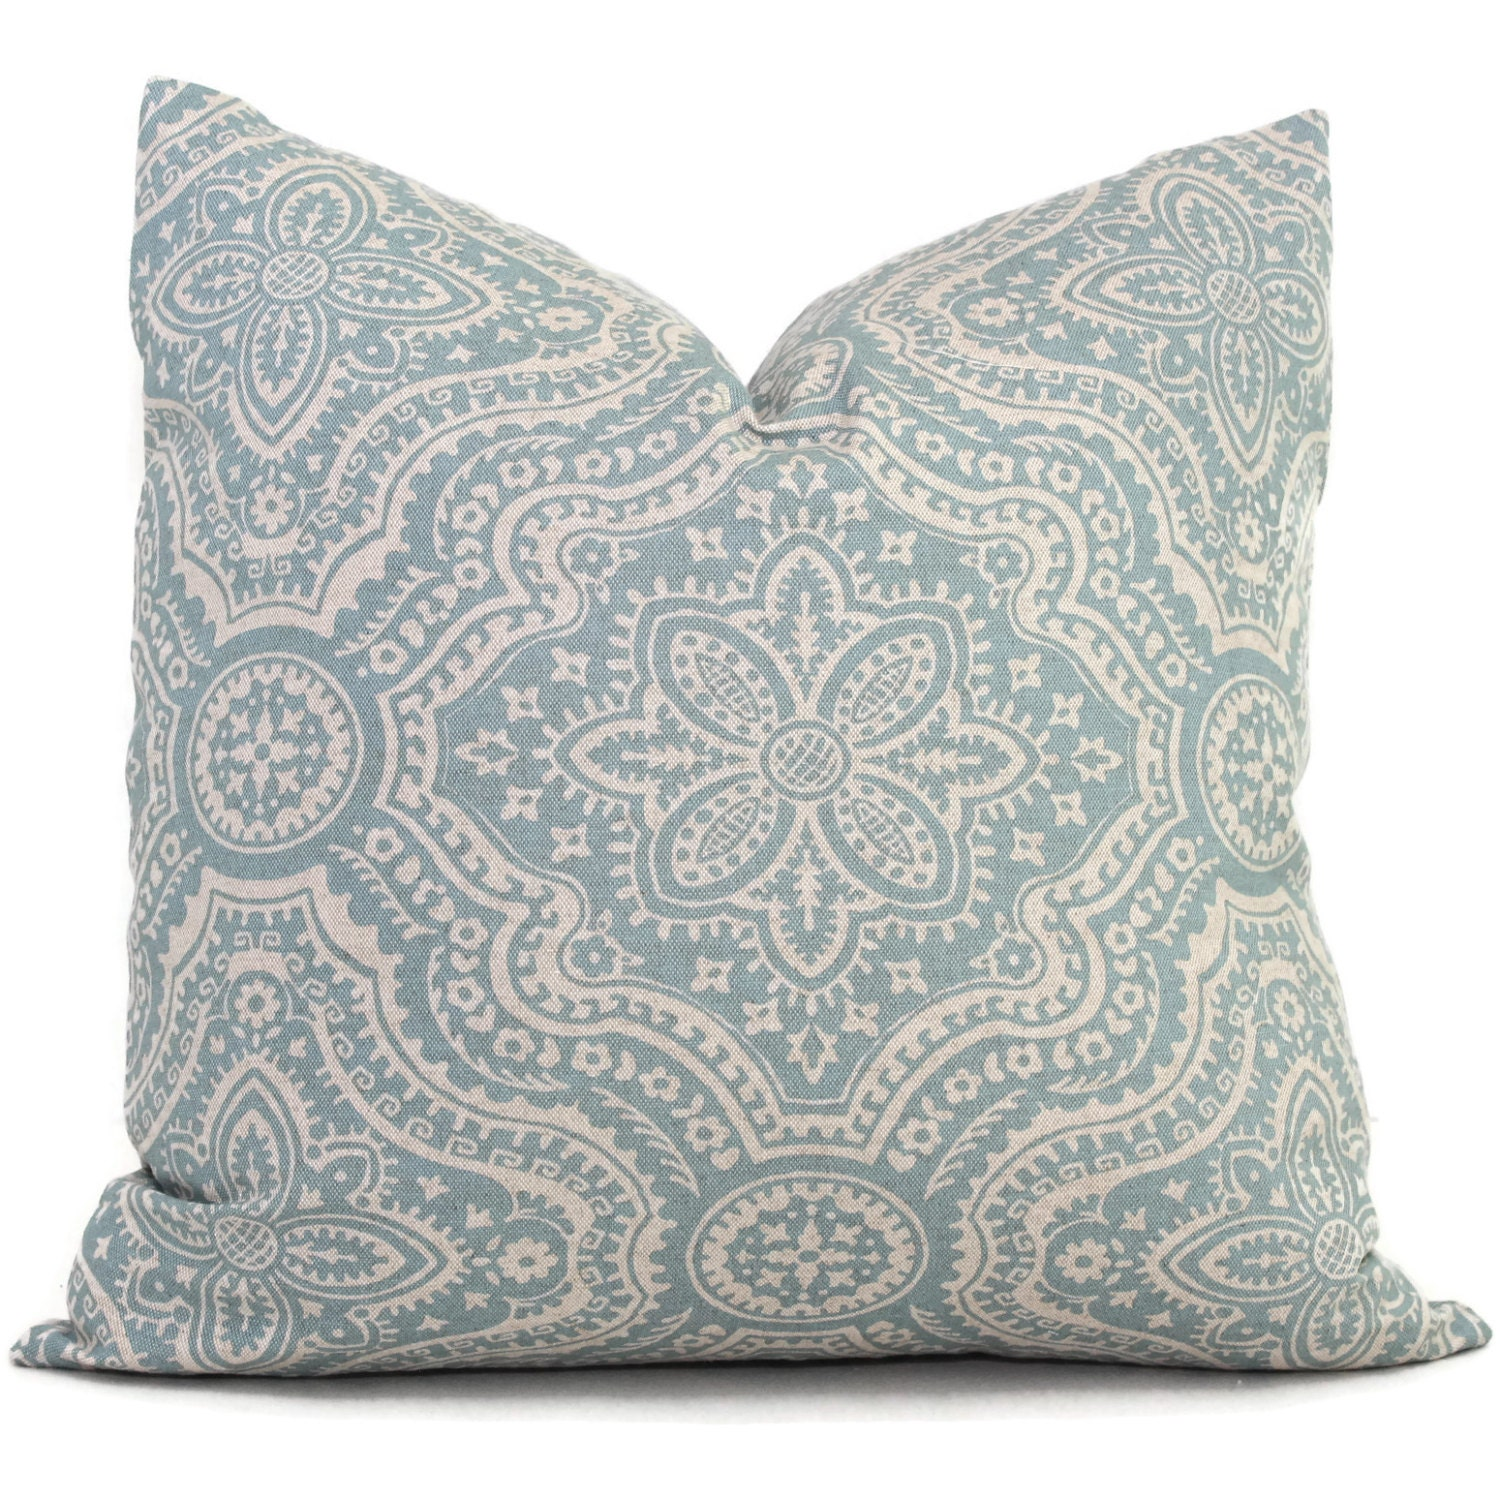 Aqua And Gray Damask Decorative Pillow Cover Square Eurosham